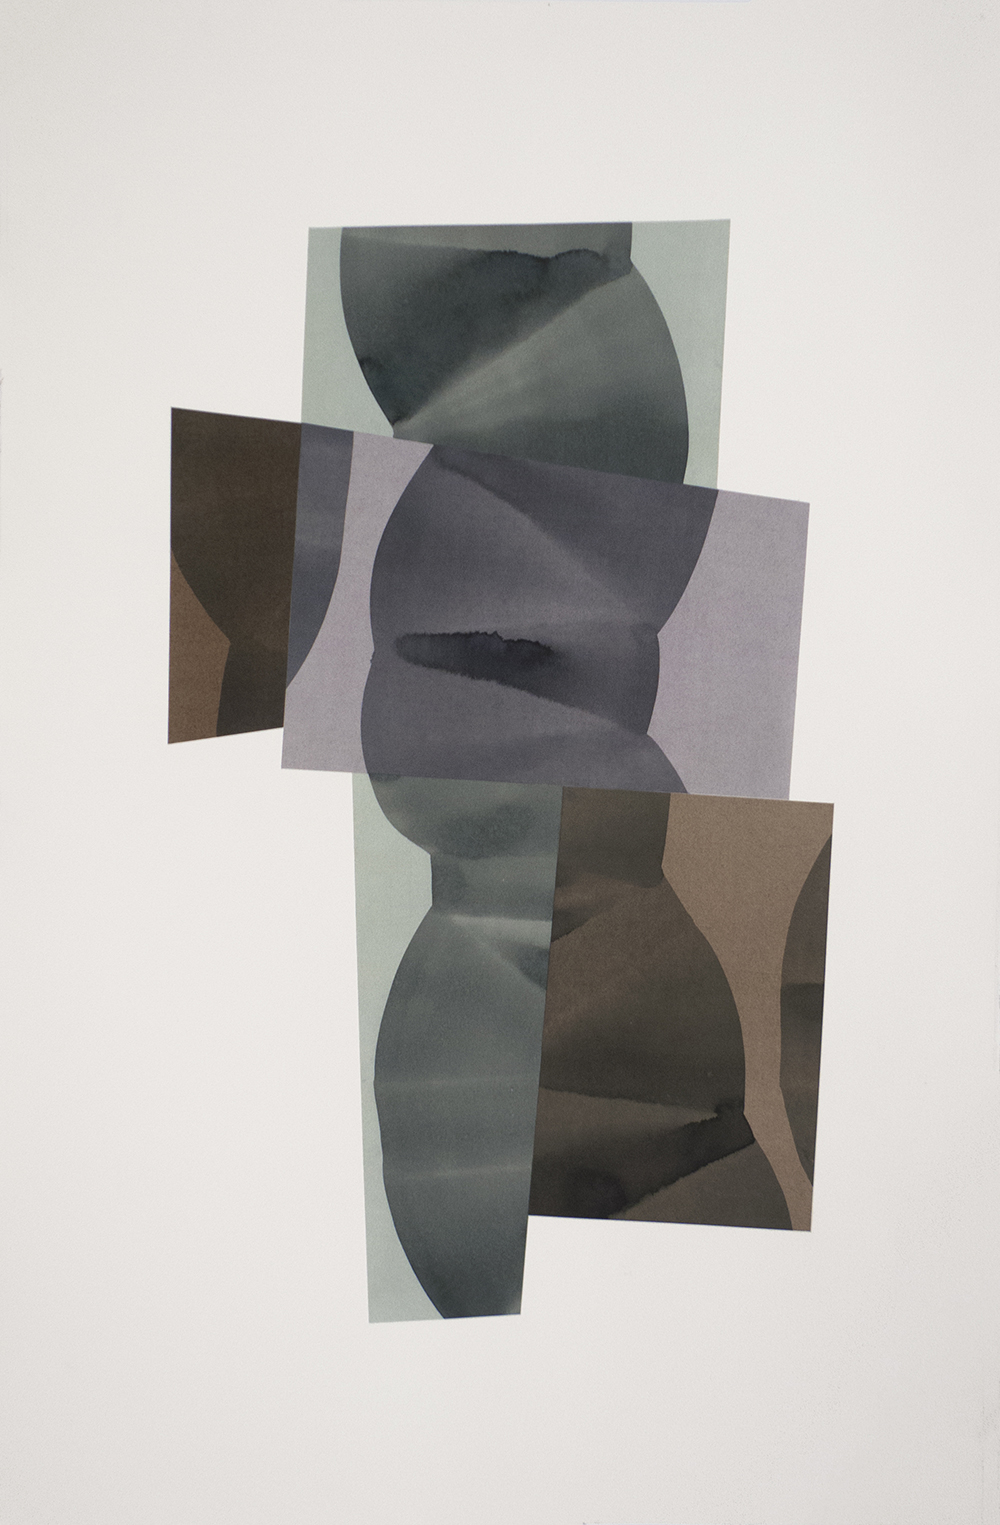 """Simone Rochon, Ombres souples no. 5 , 2017, collage, acrylic ink on Waterford paper,40"""" x 26"""" (102 x 66 cm)."""